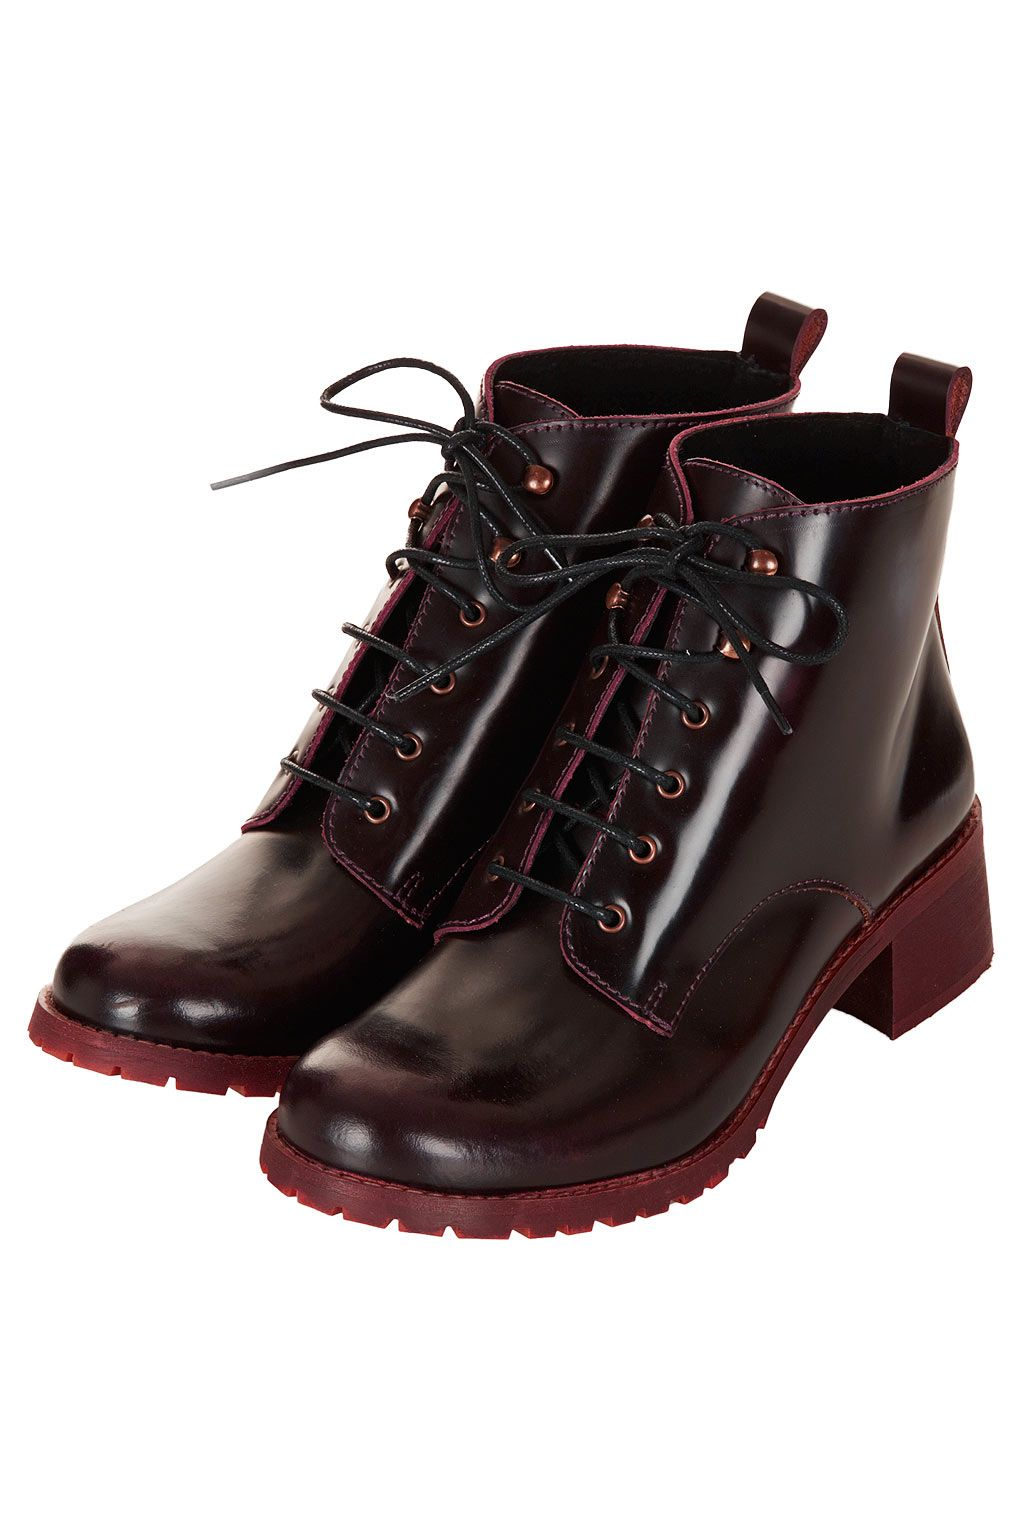 743e42bf3ce Topshop | FASHUN | Topshop boots, Boots, Lace up ankle boots